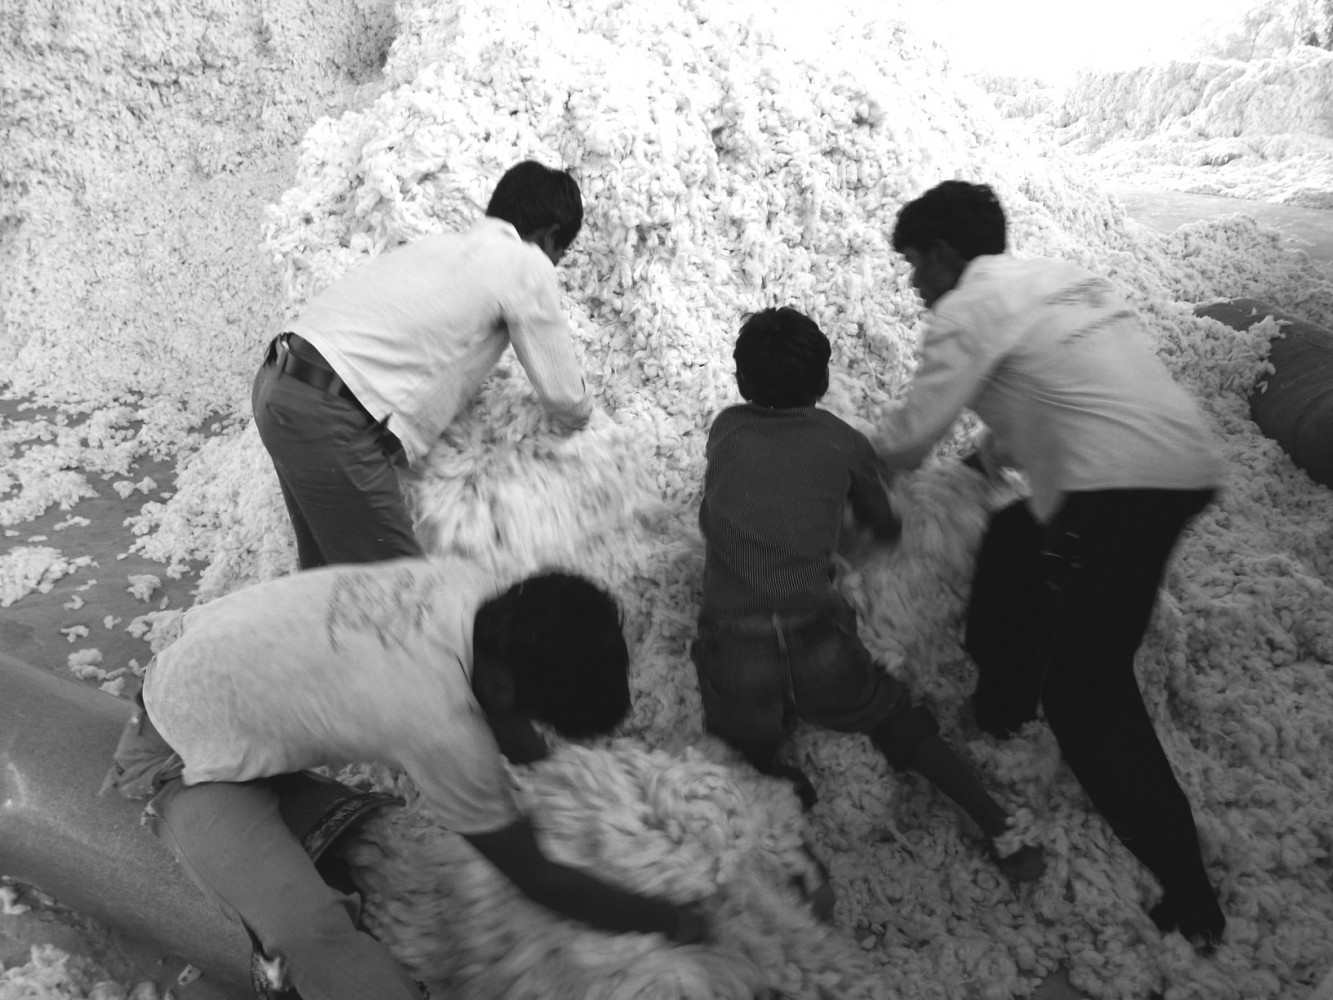 Cotton workers in Andhra Pradesh, India. Copyright Jankie 2011.